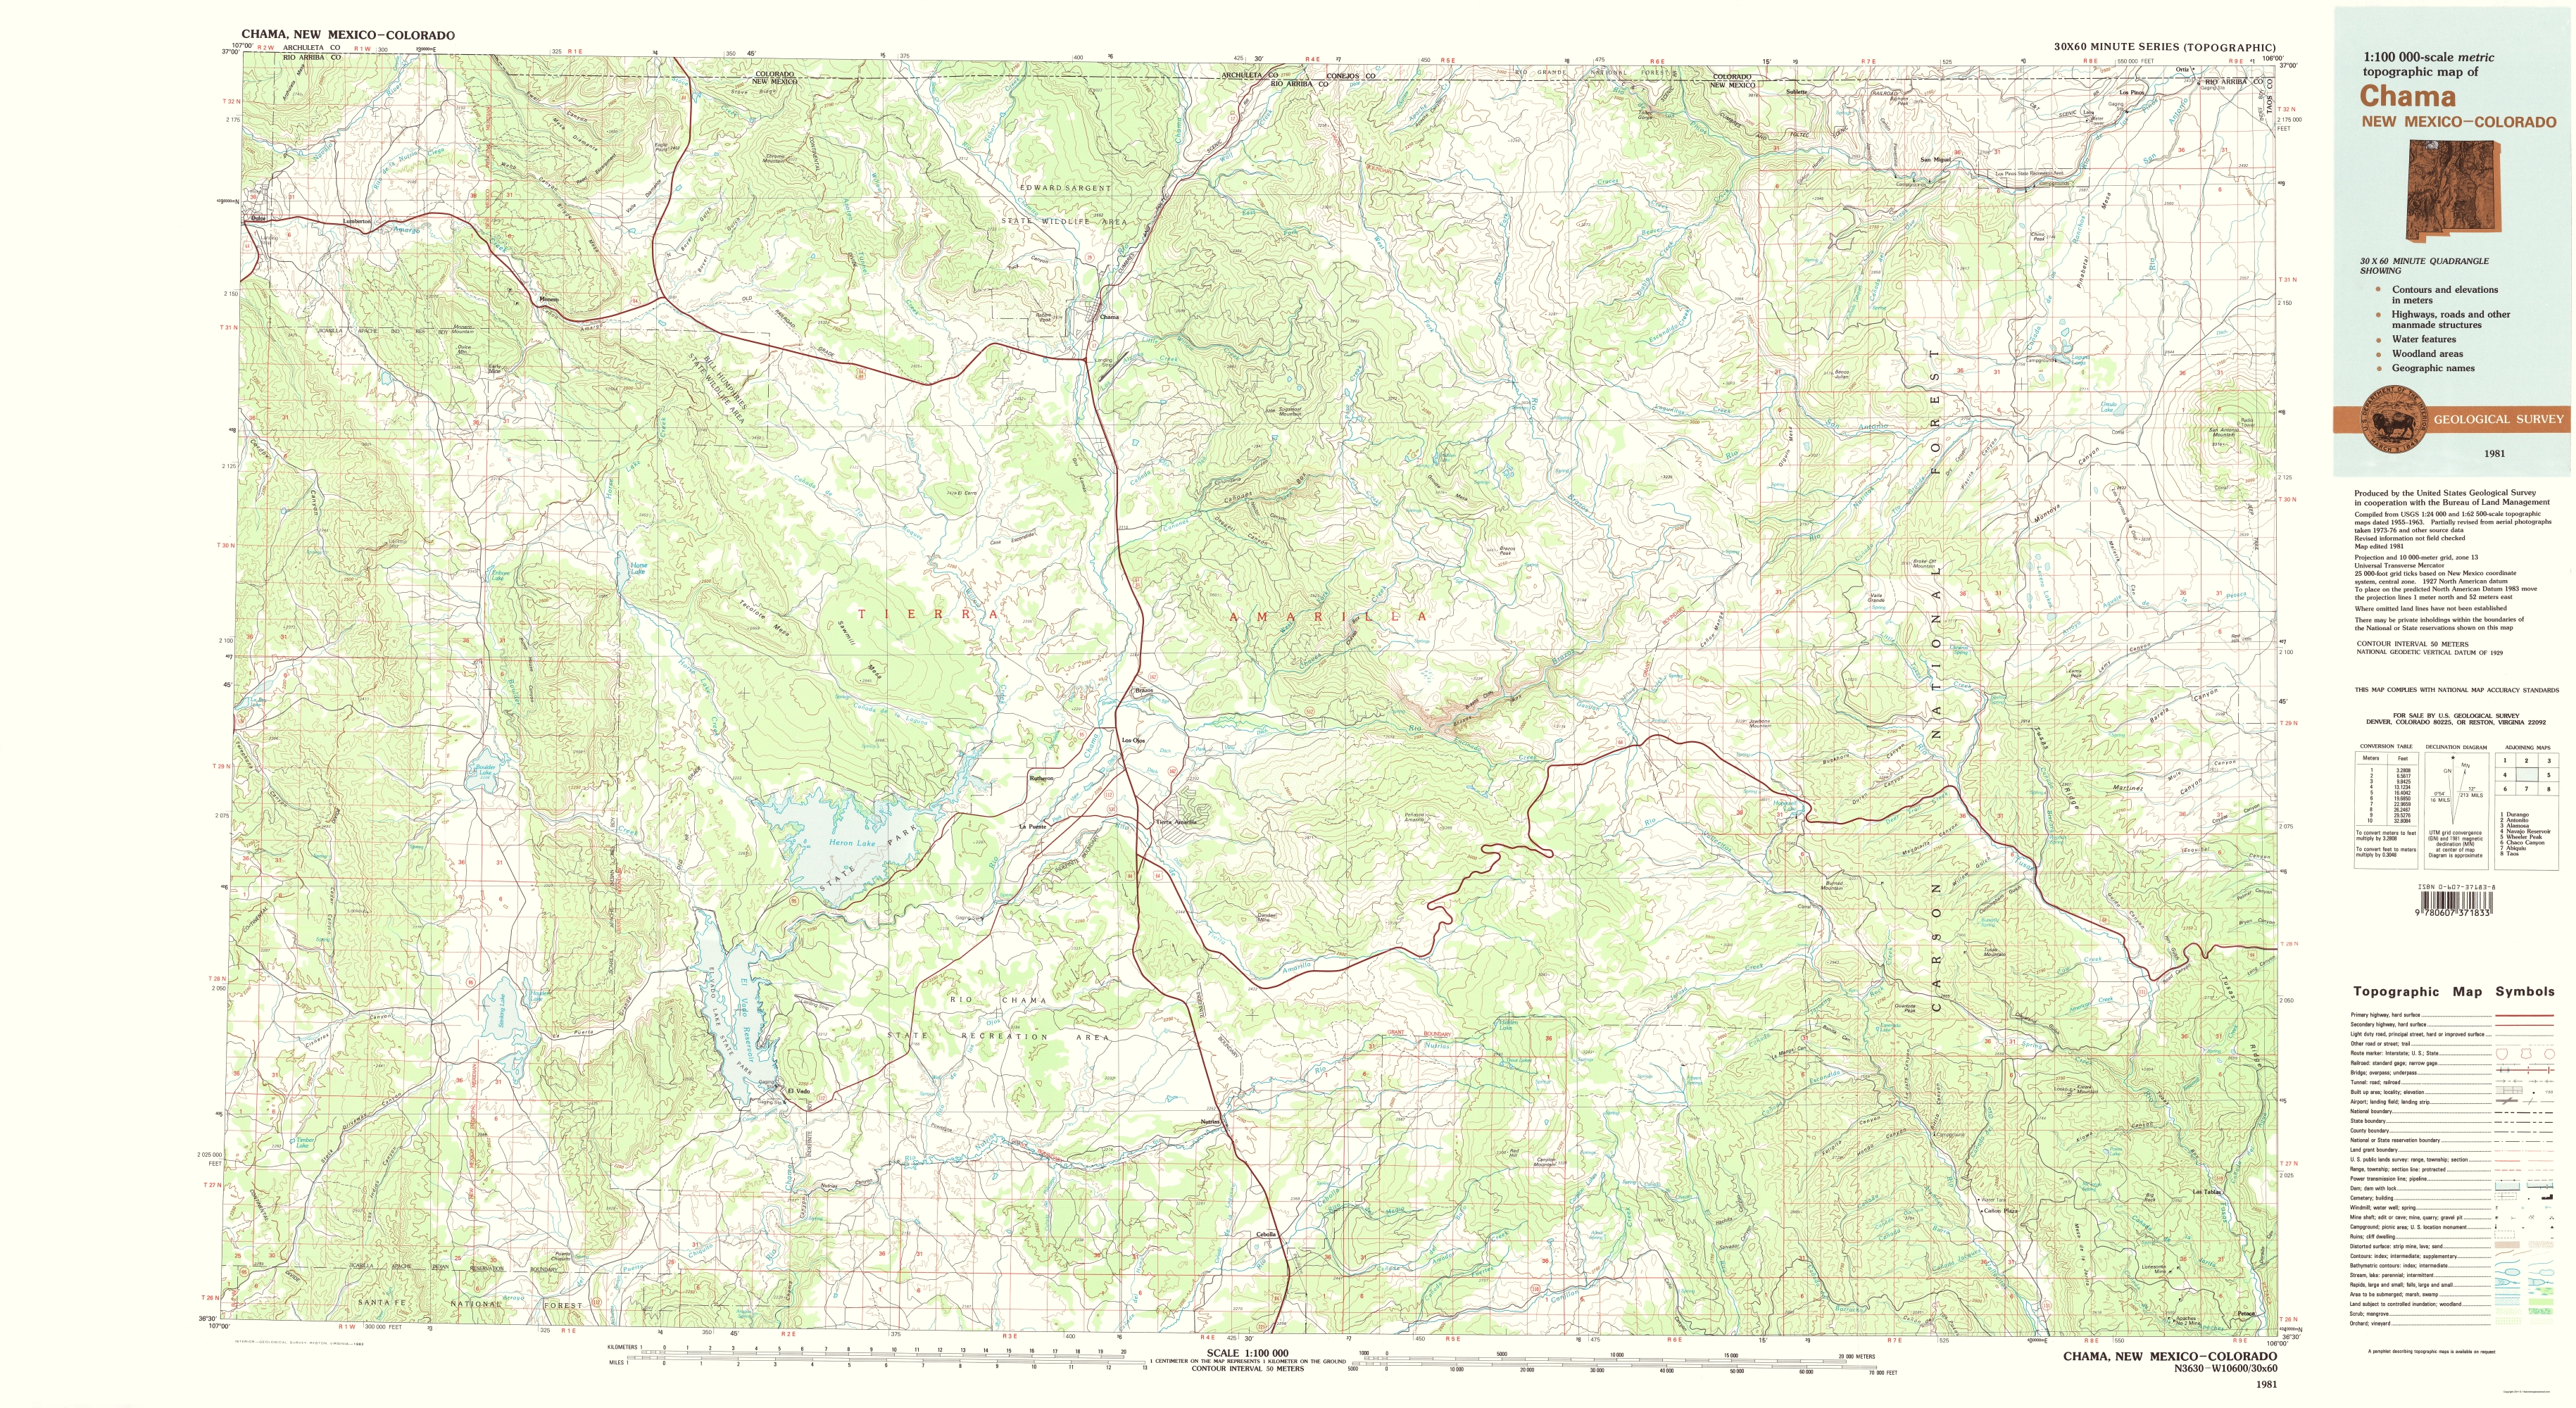 Old Topographical Map Chama New Mexico Colorado 1981